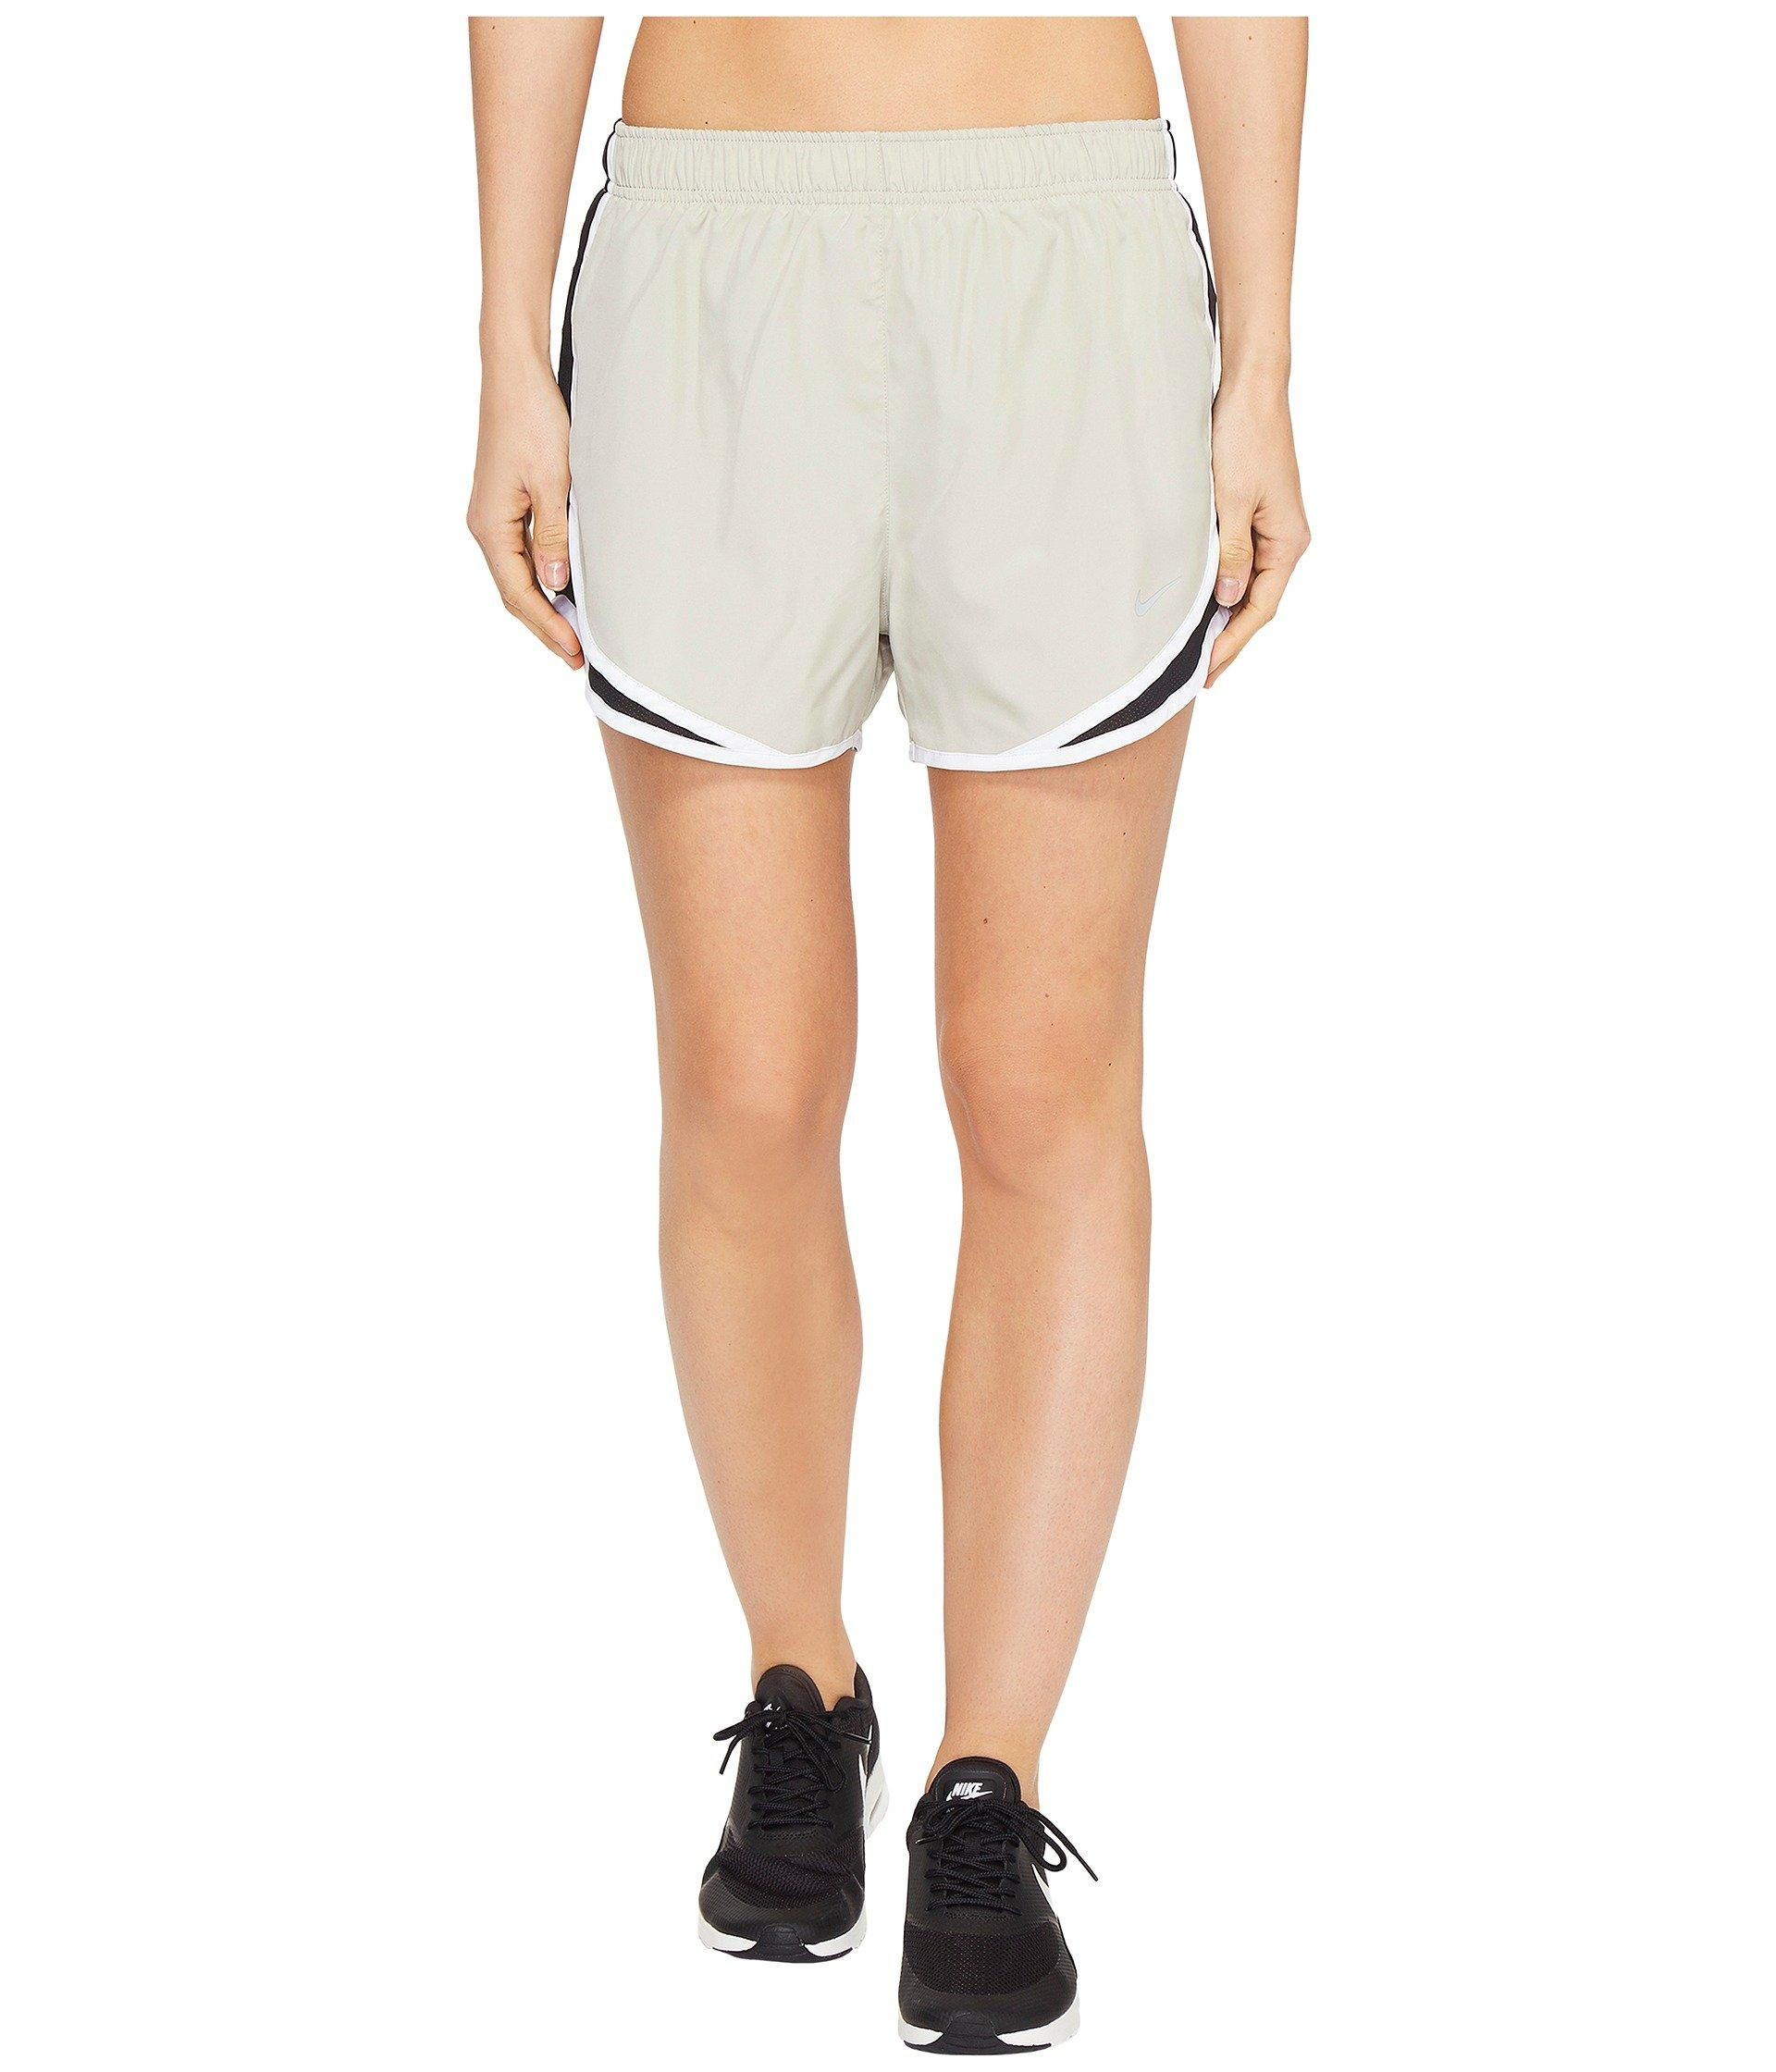 Nike Dry Tempo Short In Pale Grey/Black/White/Wolf Grey